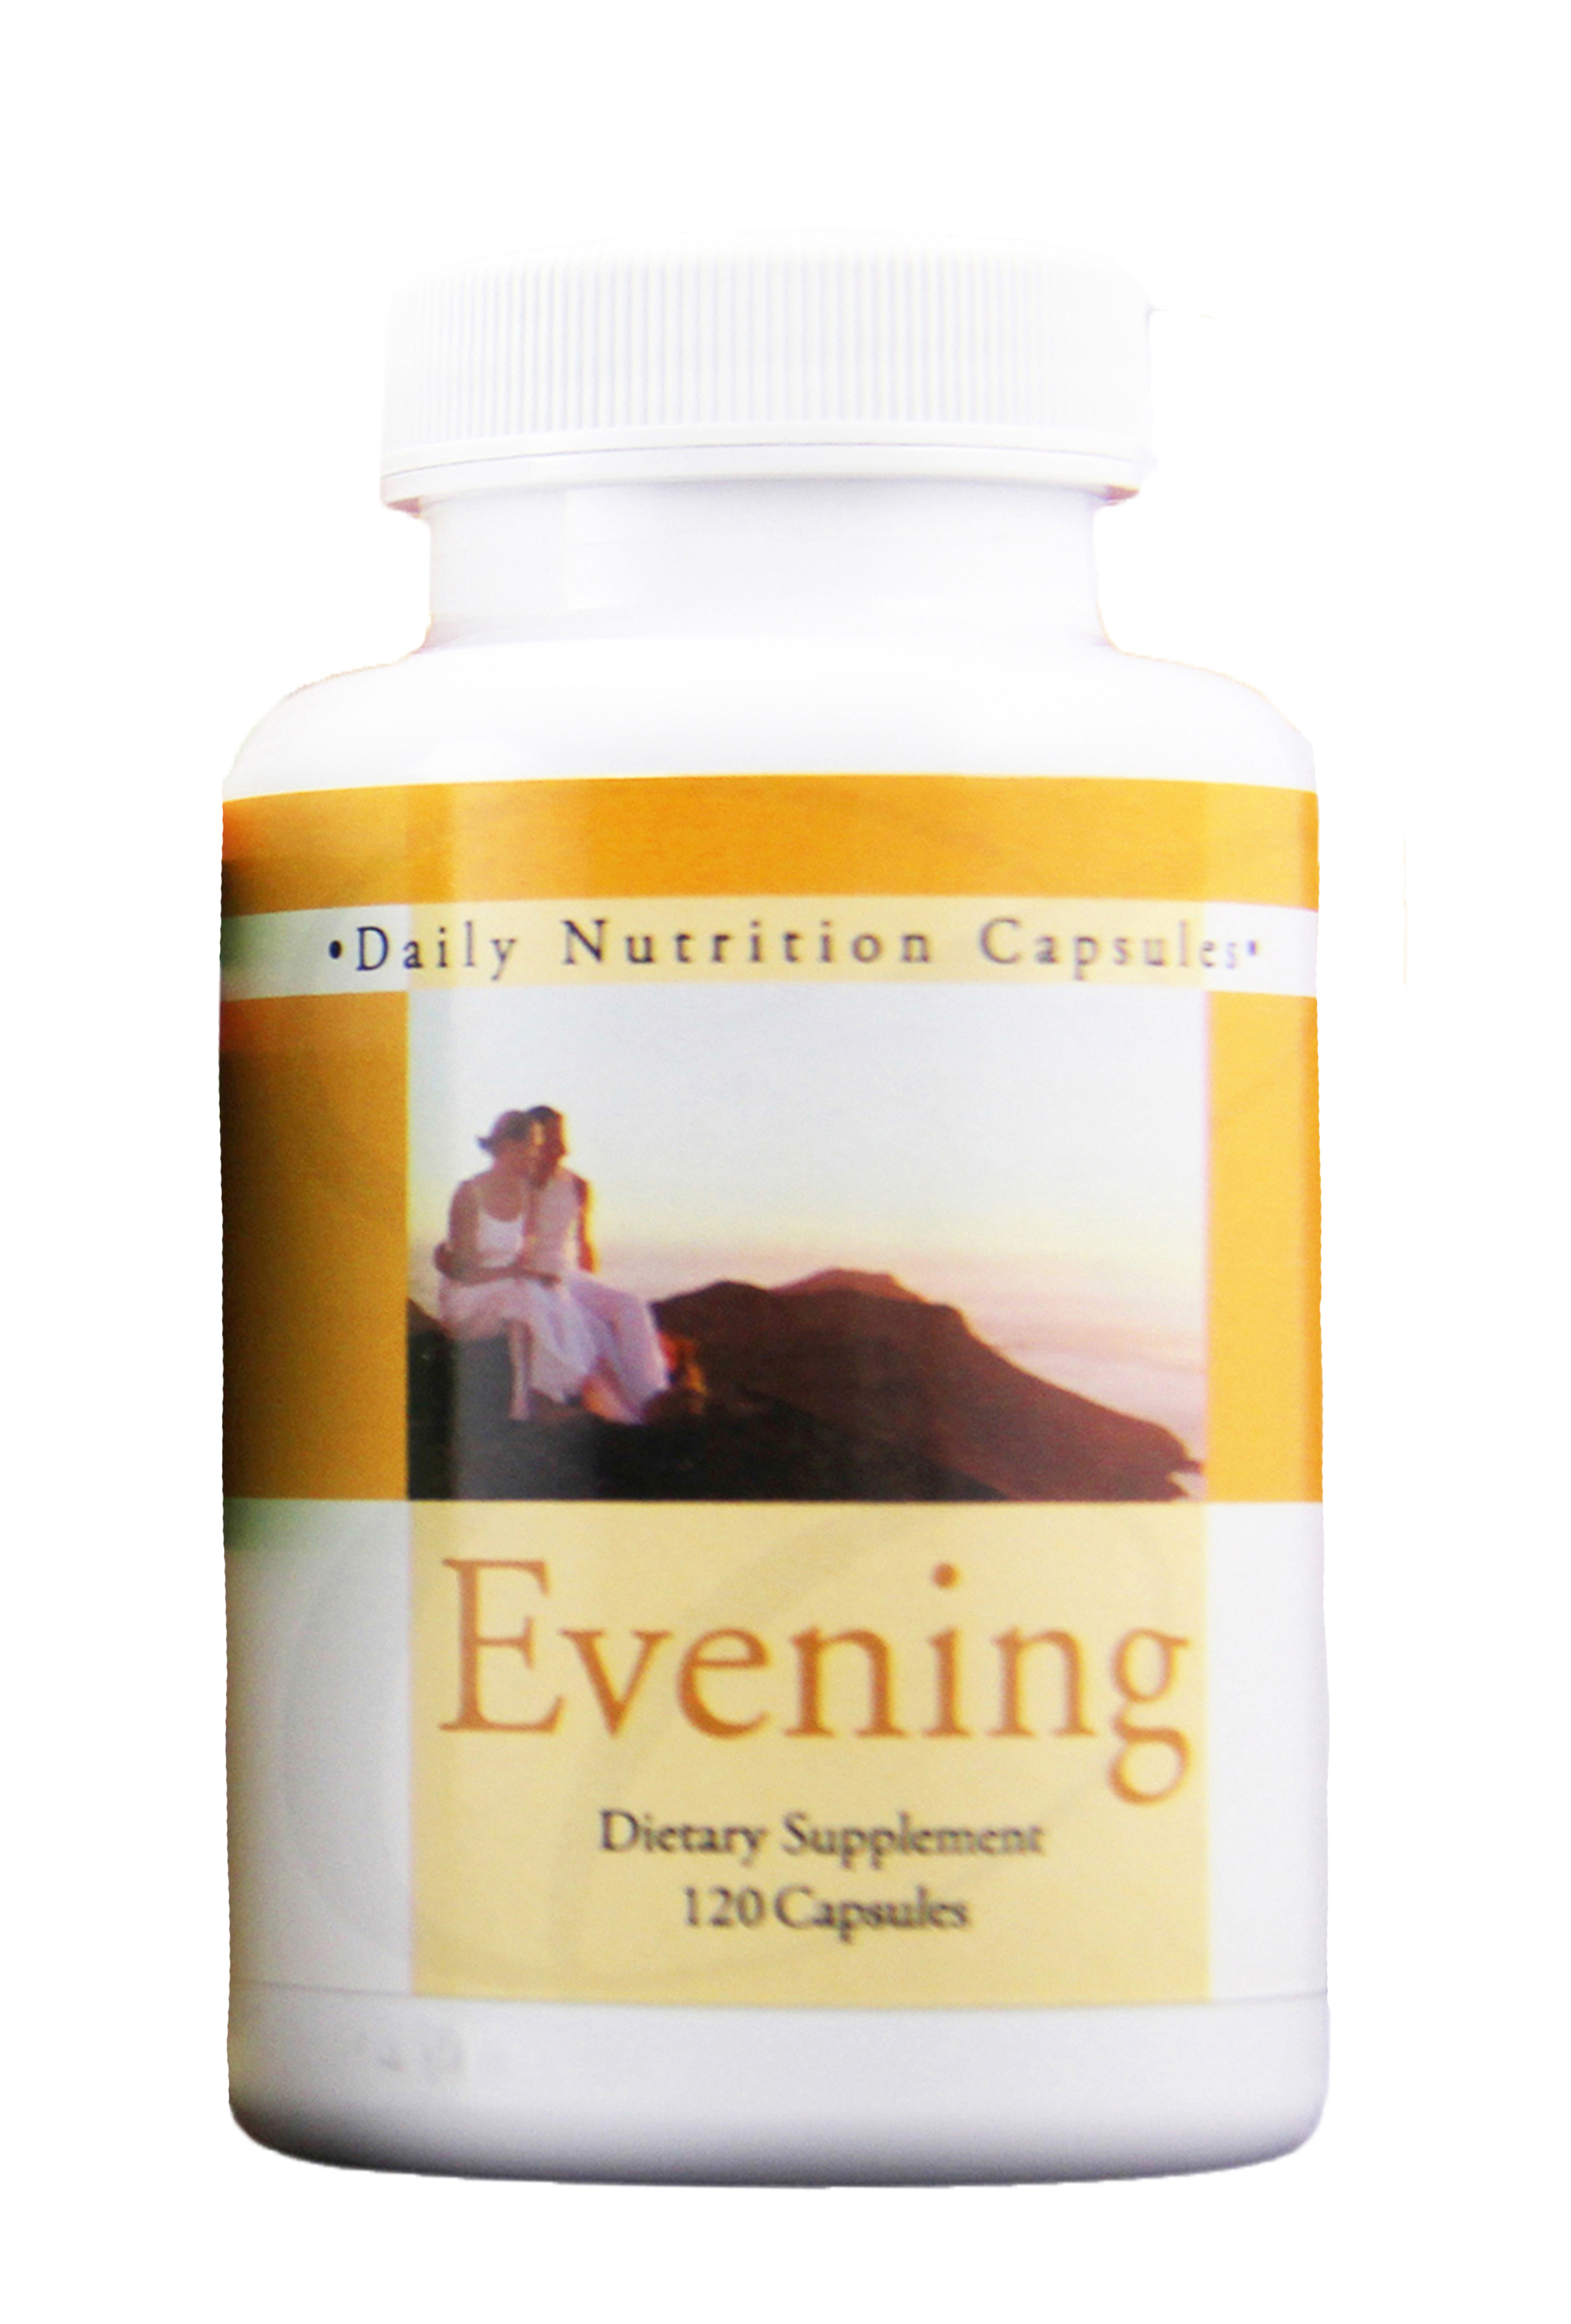 daily nutrition evening - CONTAINS OVER 20 TYPES OF PRECIOUS BOTANICALS TO HELP CREATE A BASIC FOUNDATION FOR DAILY OVERALL WELLNESS* DAILY BOTANICAL FORMULABee Pollen, Dong Quai, Perilla, Luffa, Ginger, Jing Jie, Panax Ginseng, Cassia Tora Seed, Chinese Dodder, Tangerine Peel, Peach Seed, Reishi, Chinese Lovage Root, Siler Root, Knotweed, Pearl, Privet Fruit, Chrysanthemum, Chinese Red Date, Chinese Hawthorn, Licorice Root, Safflower4 bottles / 2 bottles of each   480 capsules   Code: 2106